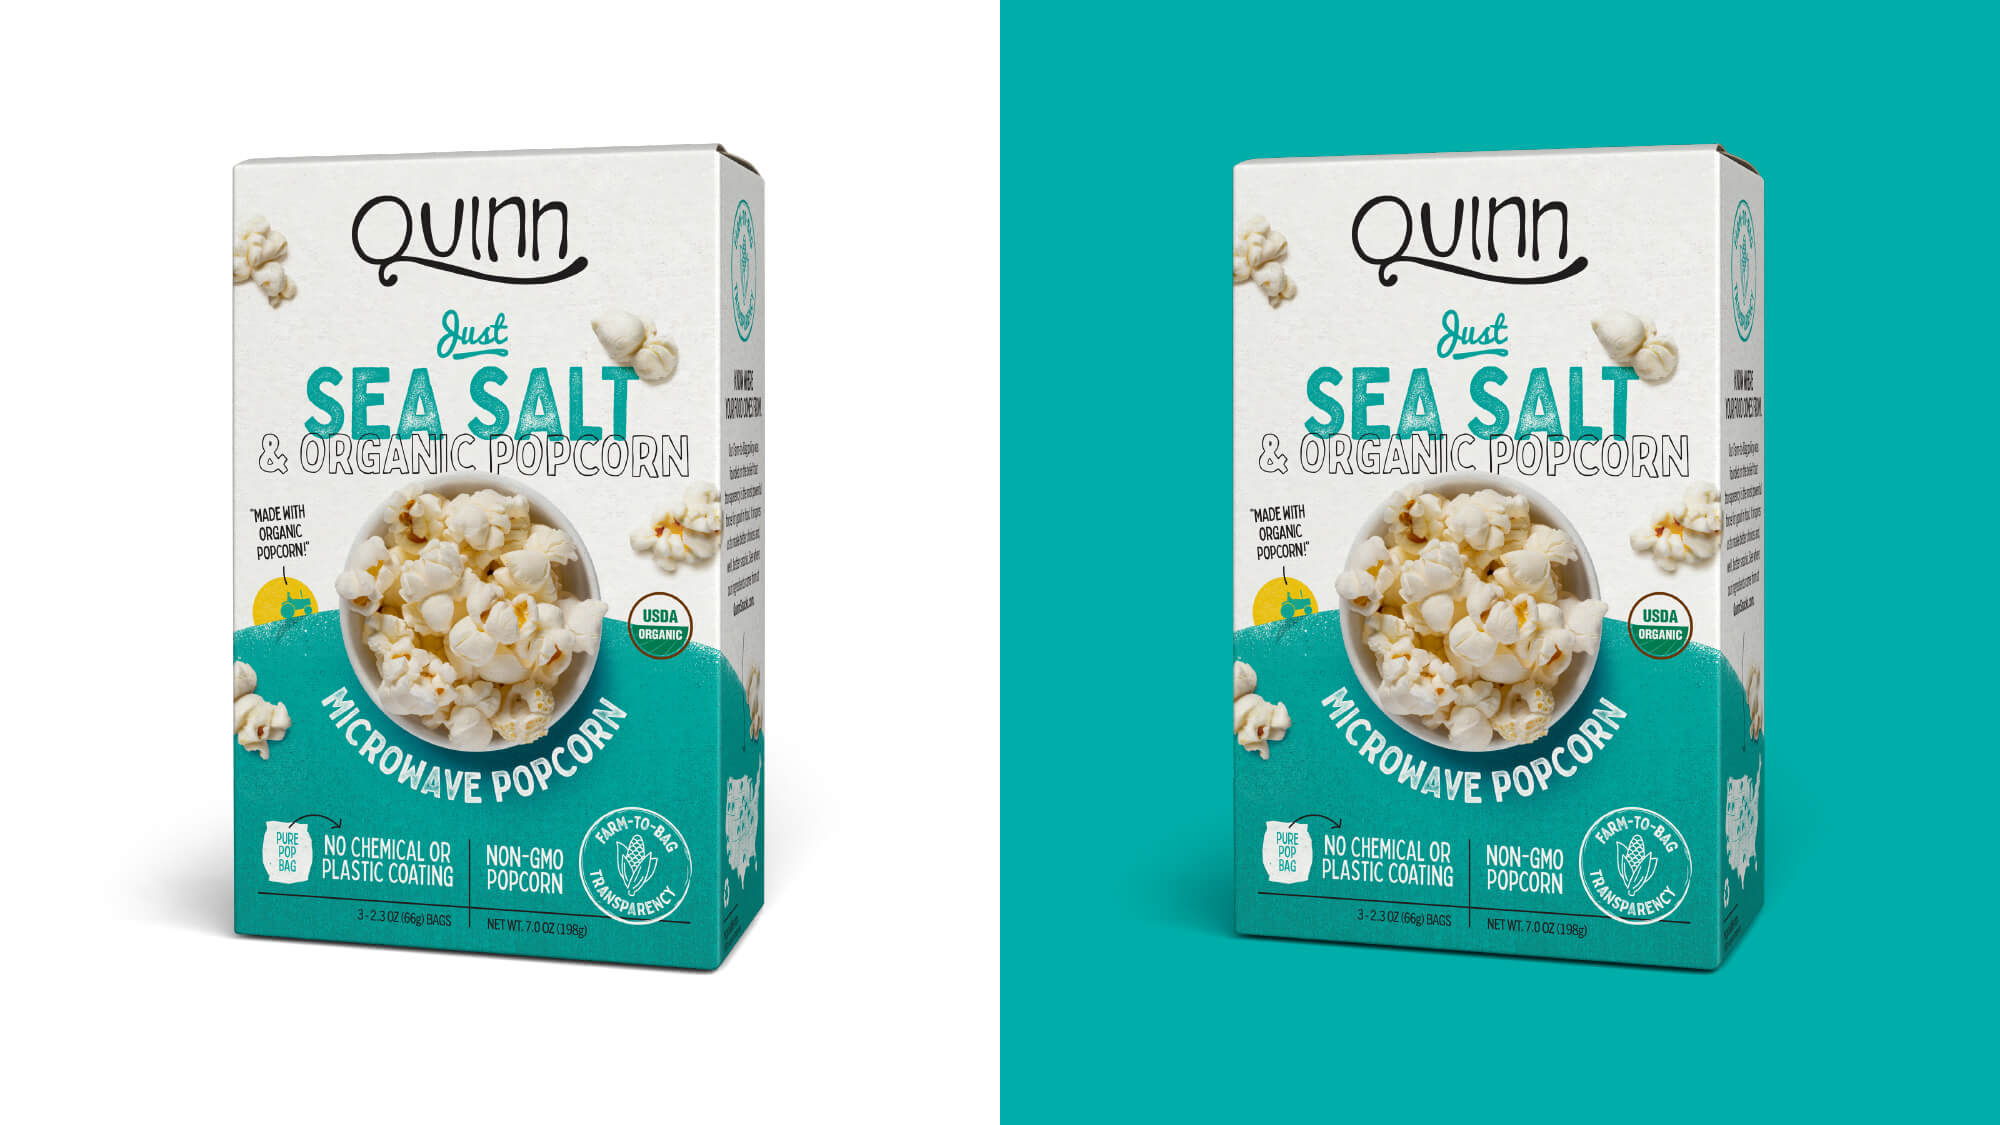 Quinn Popcorn Packaging - Just Sea Salt